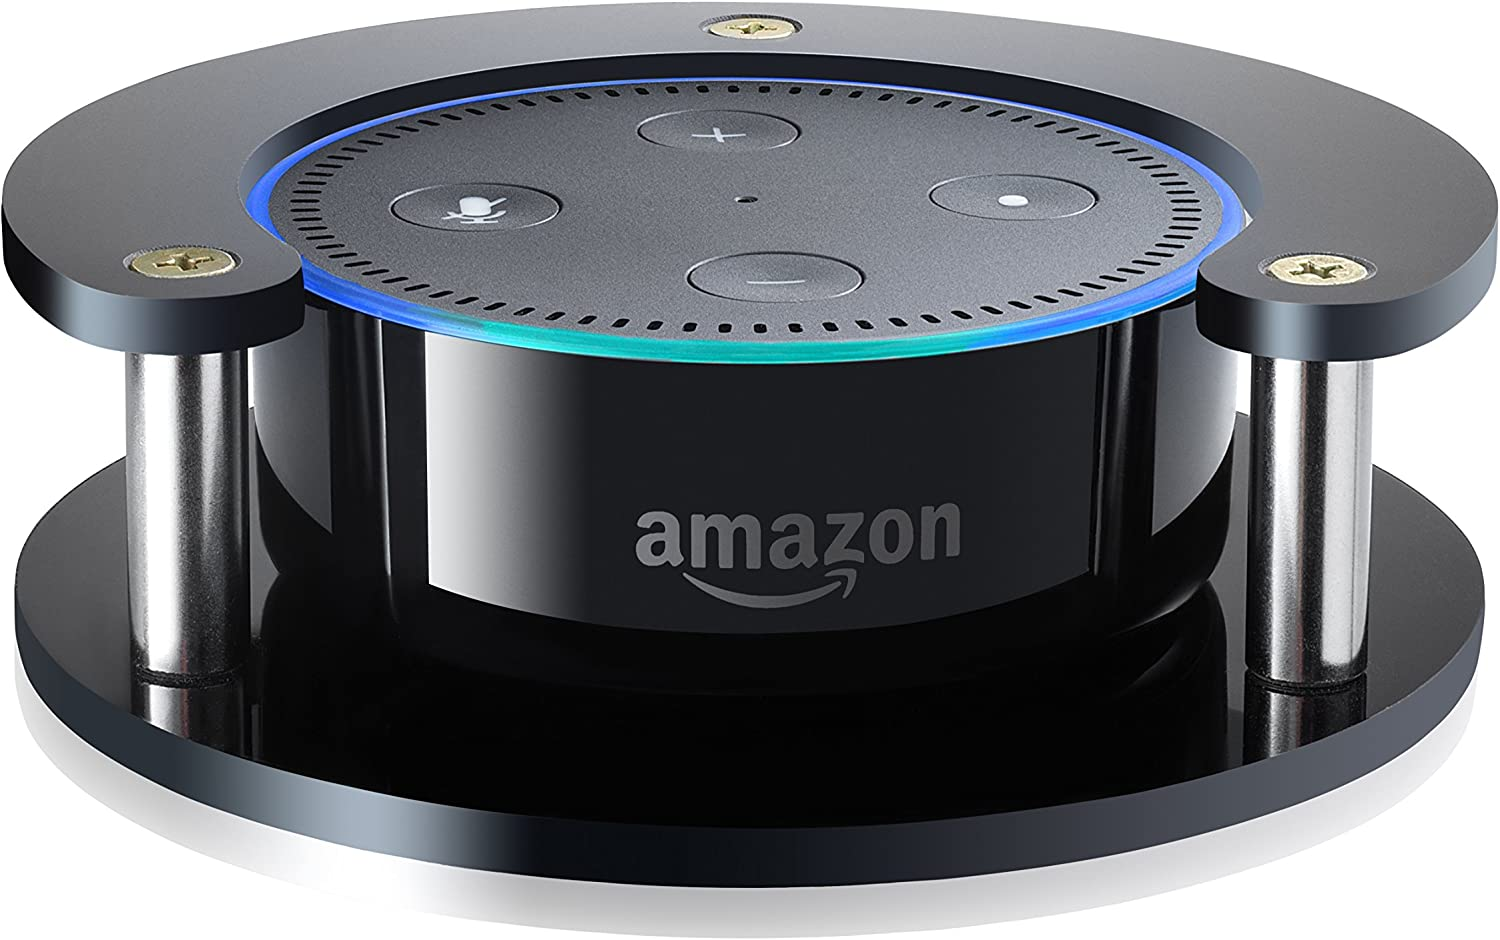 1 Echo Dot Speaker Stand (Black) - Precision Fit Holder for Enhanced Stability, Predection and Audio Clarity - Lightweight Accessories for Home or Office